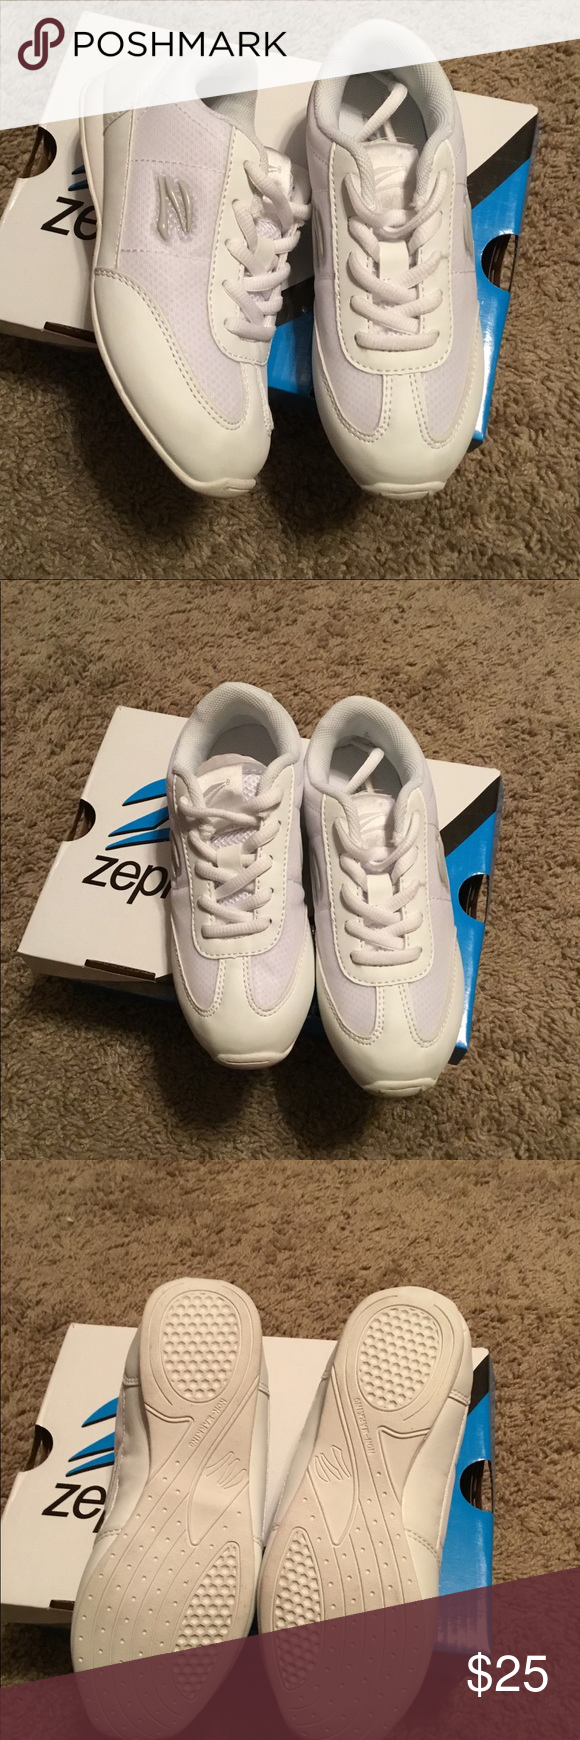 b374cac7323b Zephaniah Girls Cheerleading Shoes New in Box. More description on photos. Zephz  Shoes Sneakers